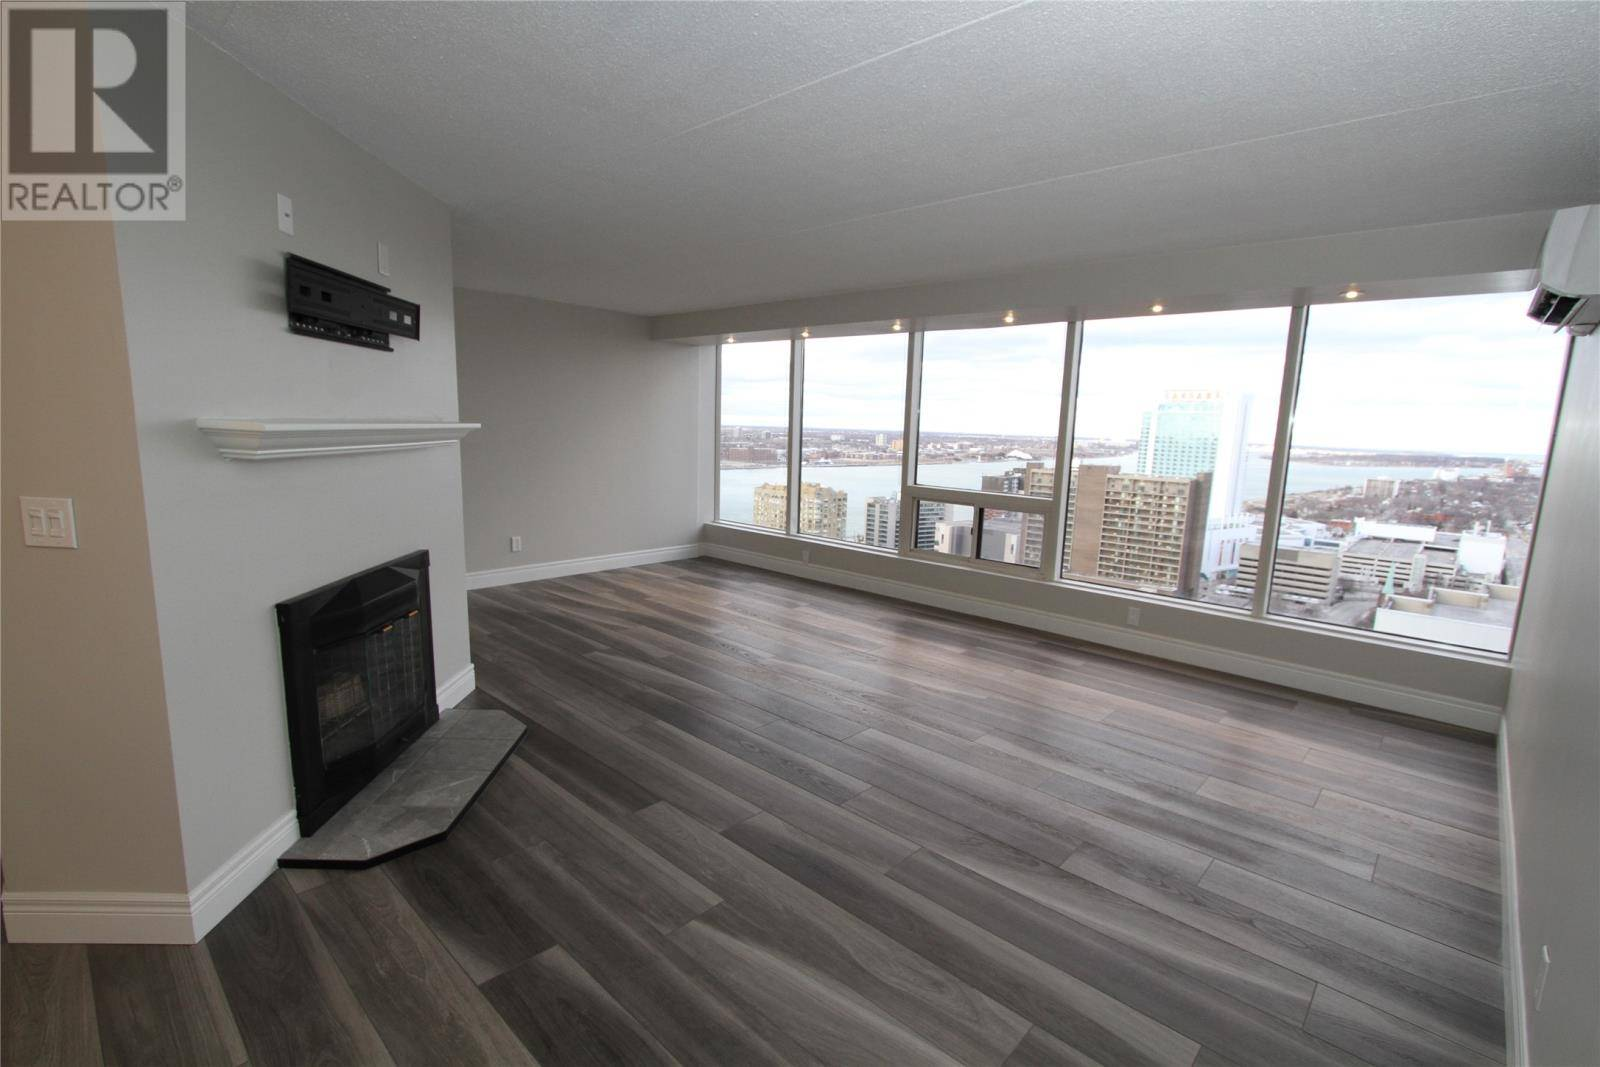 Apartment for rent at 150 Park St West Unit 3101 Windsor Ontario - MLS: 20003273